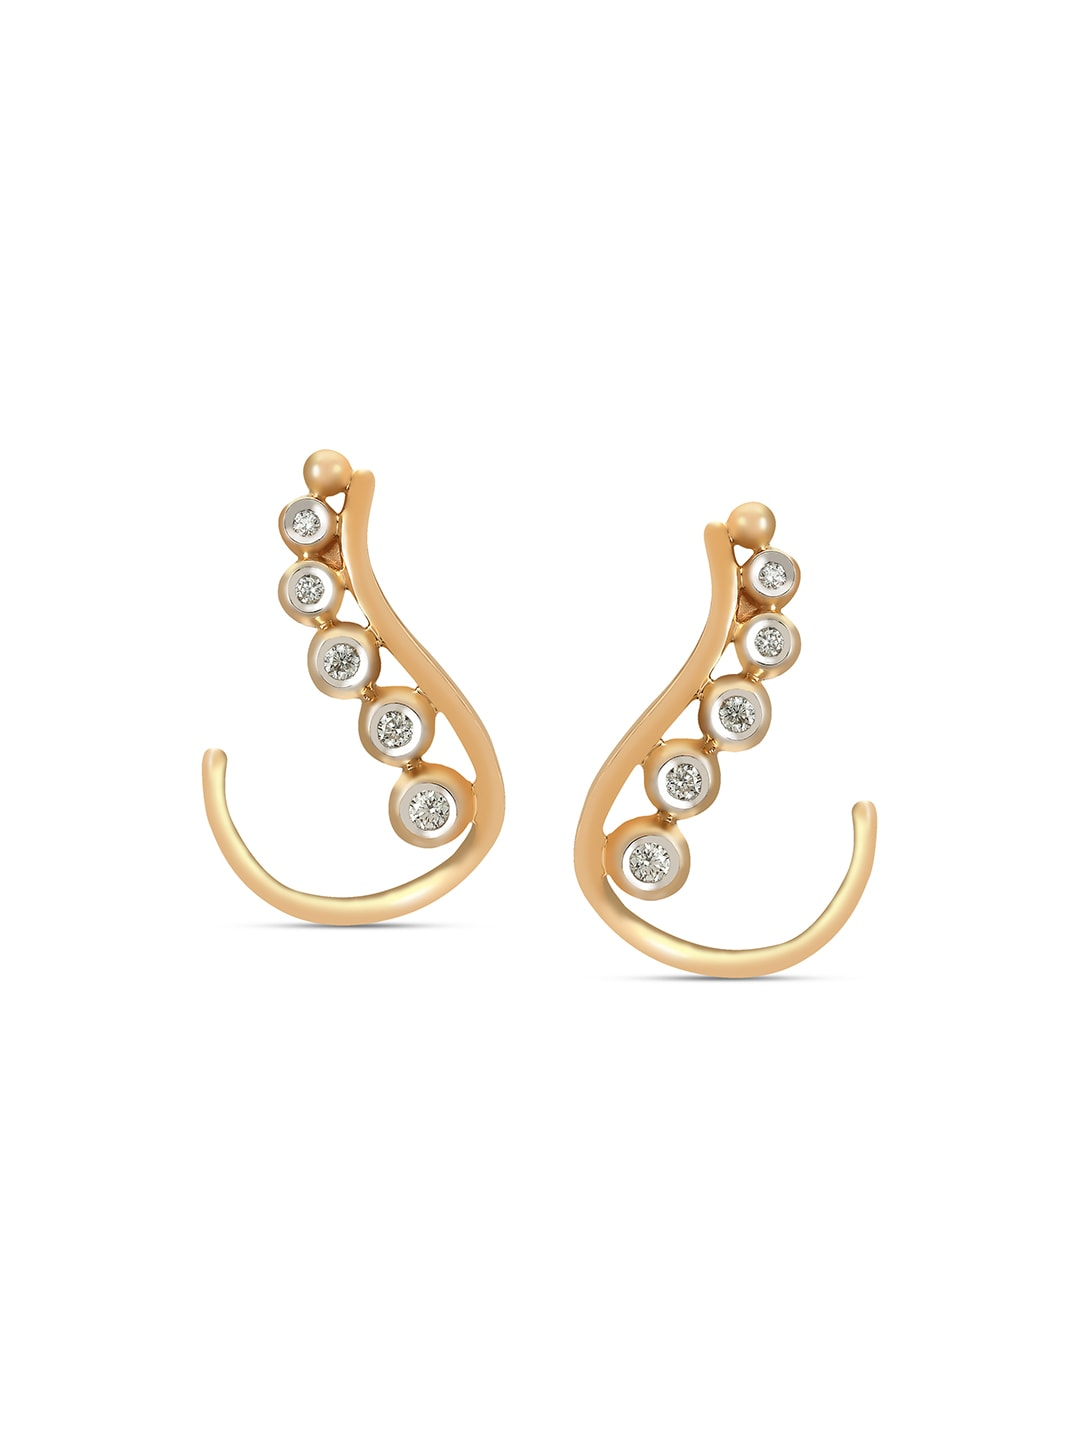 Mia By Tanishq Earrings Diamond Online In India